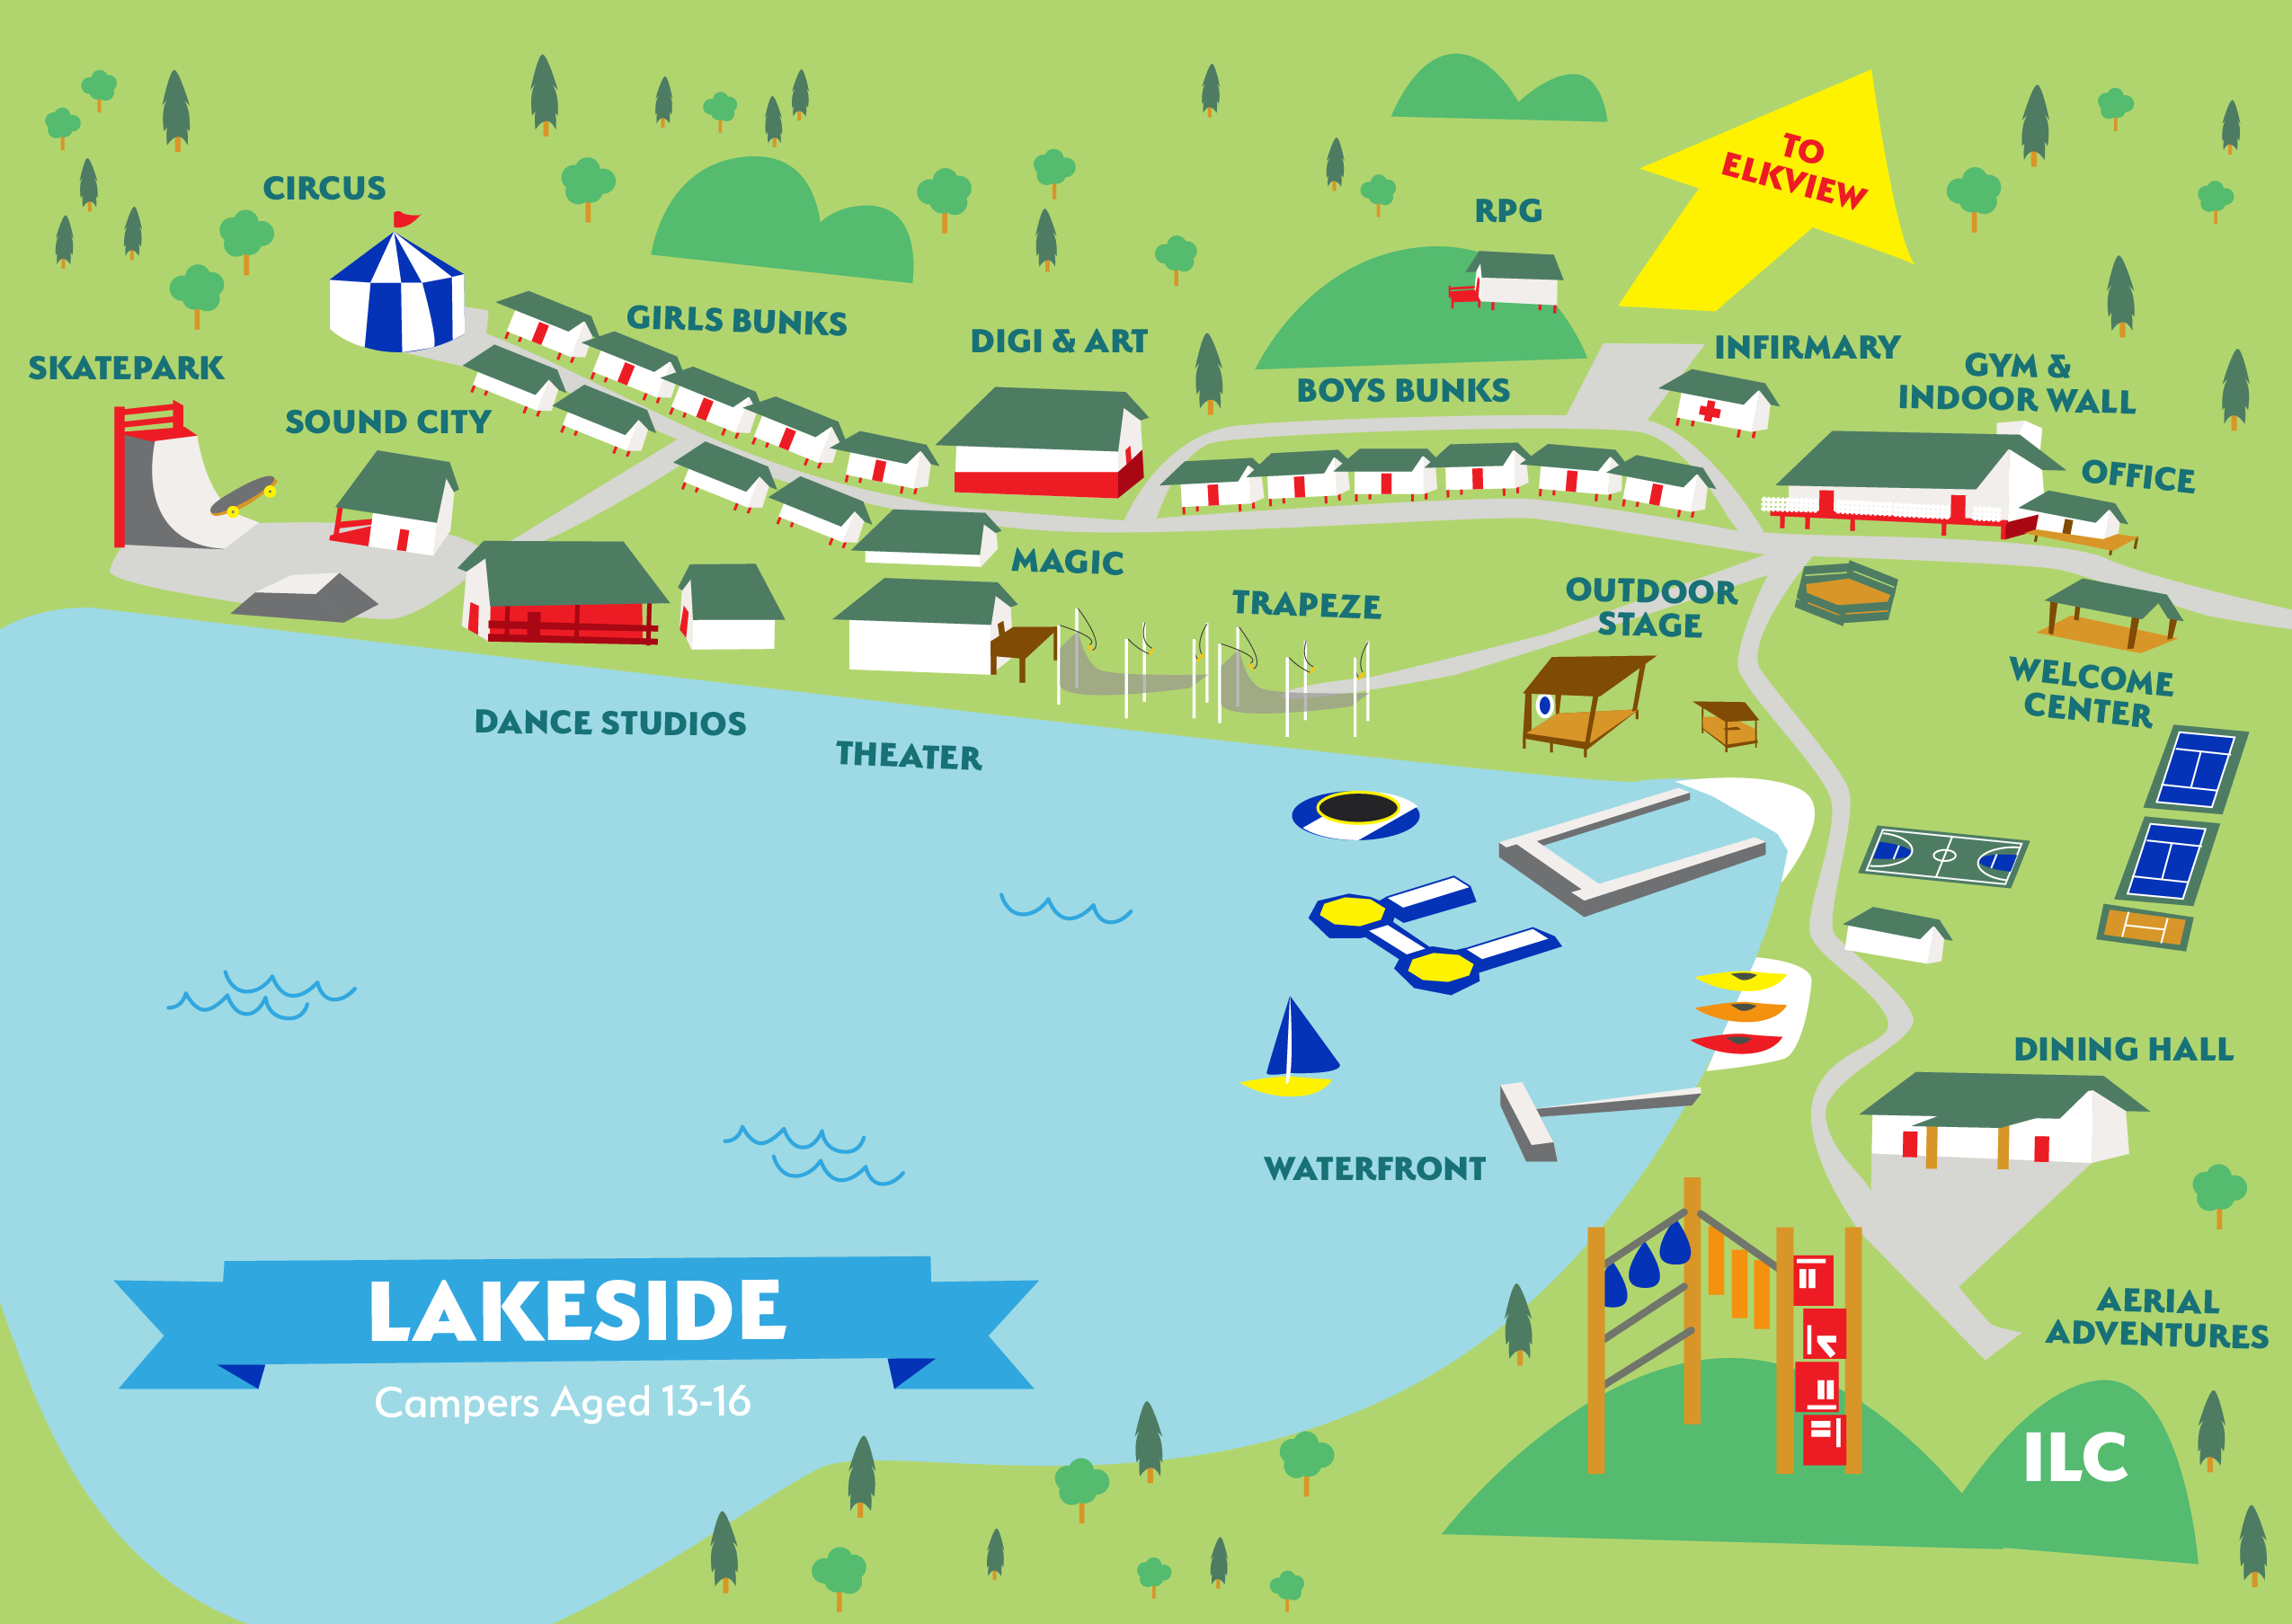 Map of Lakeside part of ILC campus